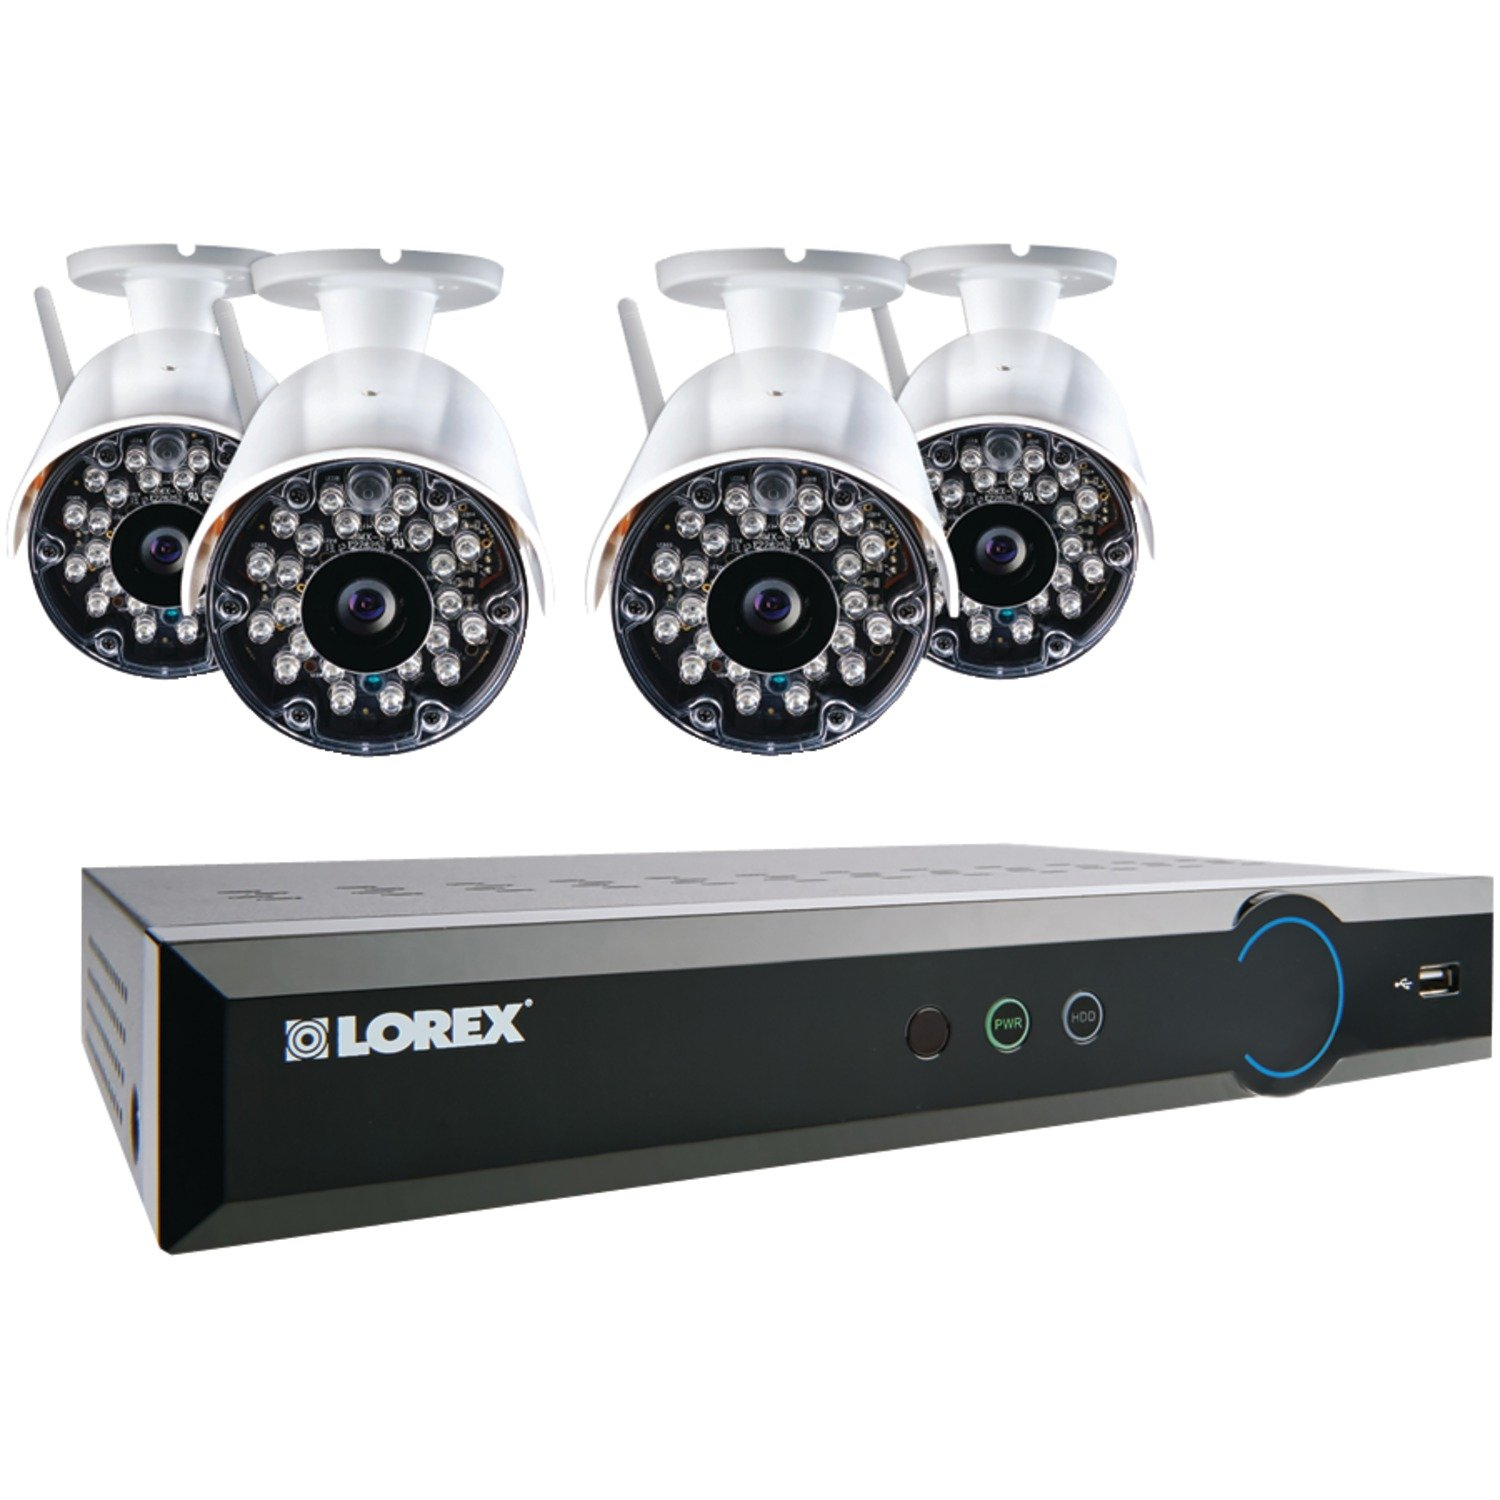 LOREX LH03081TC4W 8-Channel Stratus DVR Black